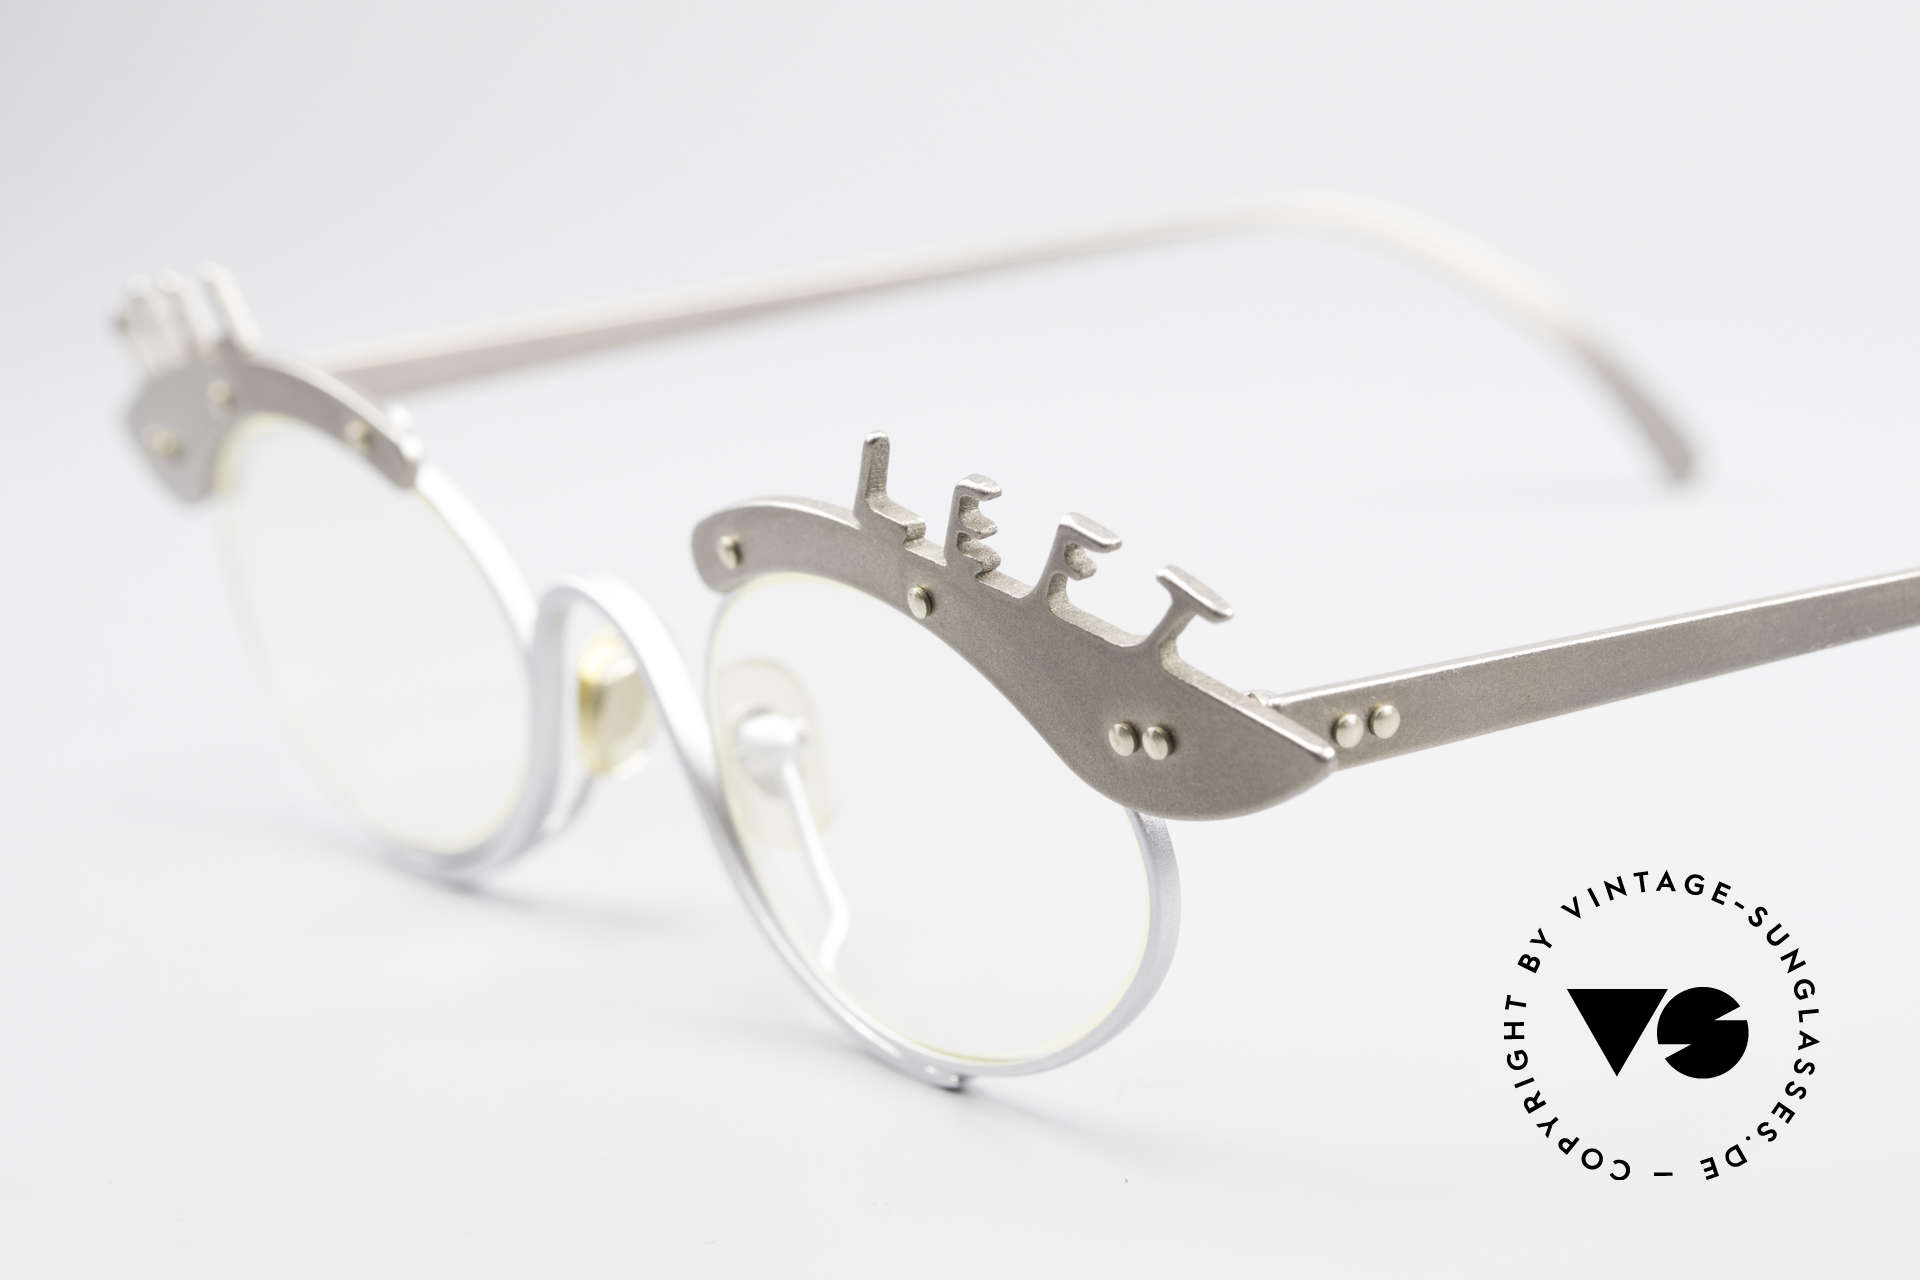 Theo Belgium Pro6 & Pro7 Two Glasses Left and Right, truly unique and fancy; furthermore in titanium quality, Made for Women